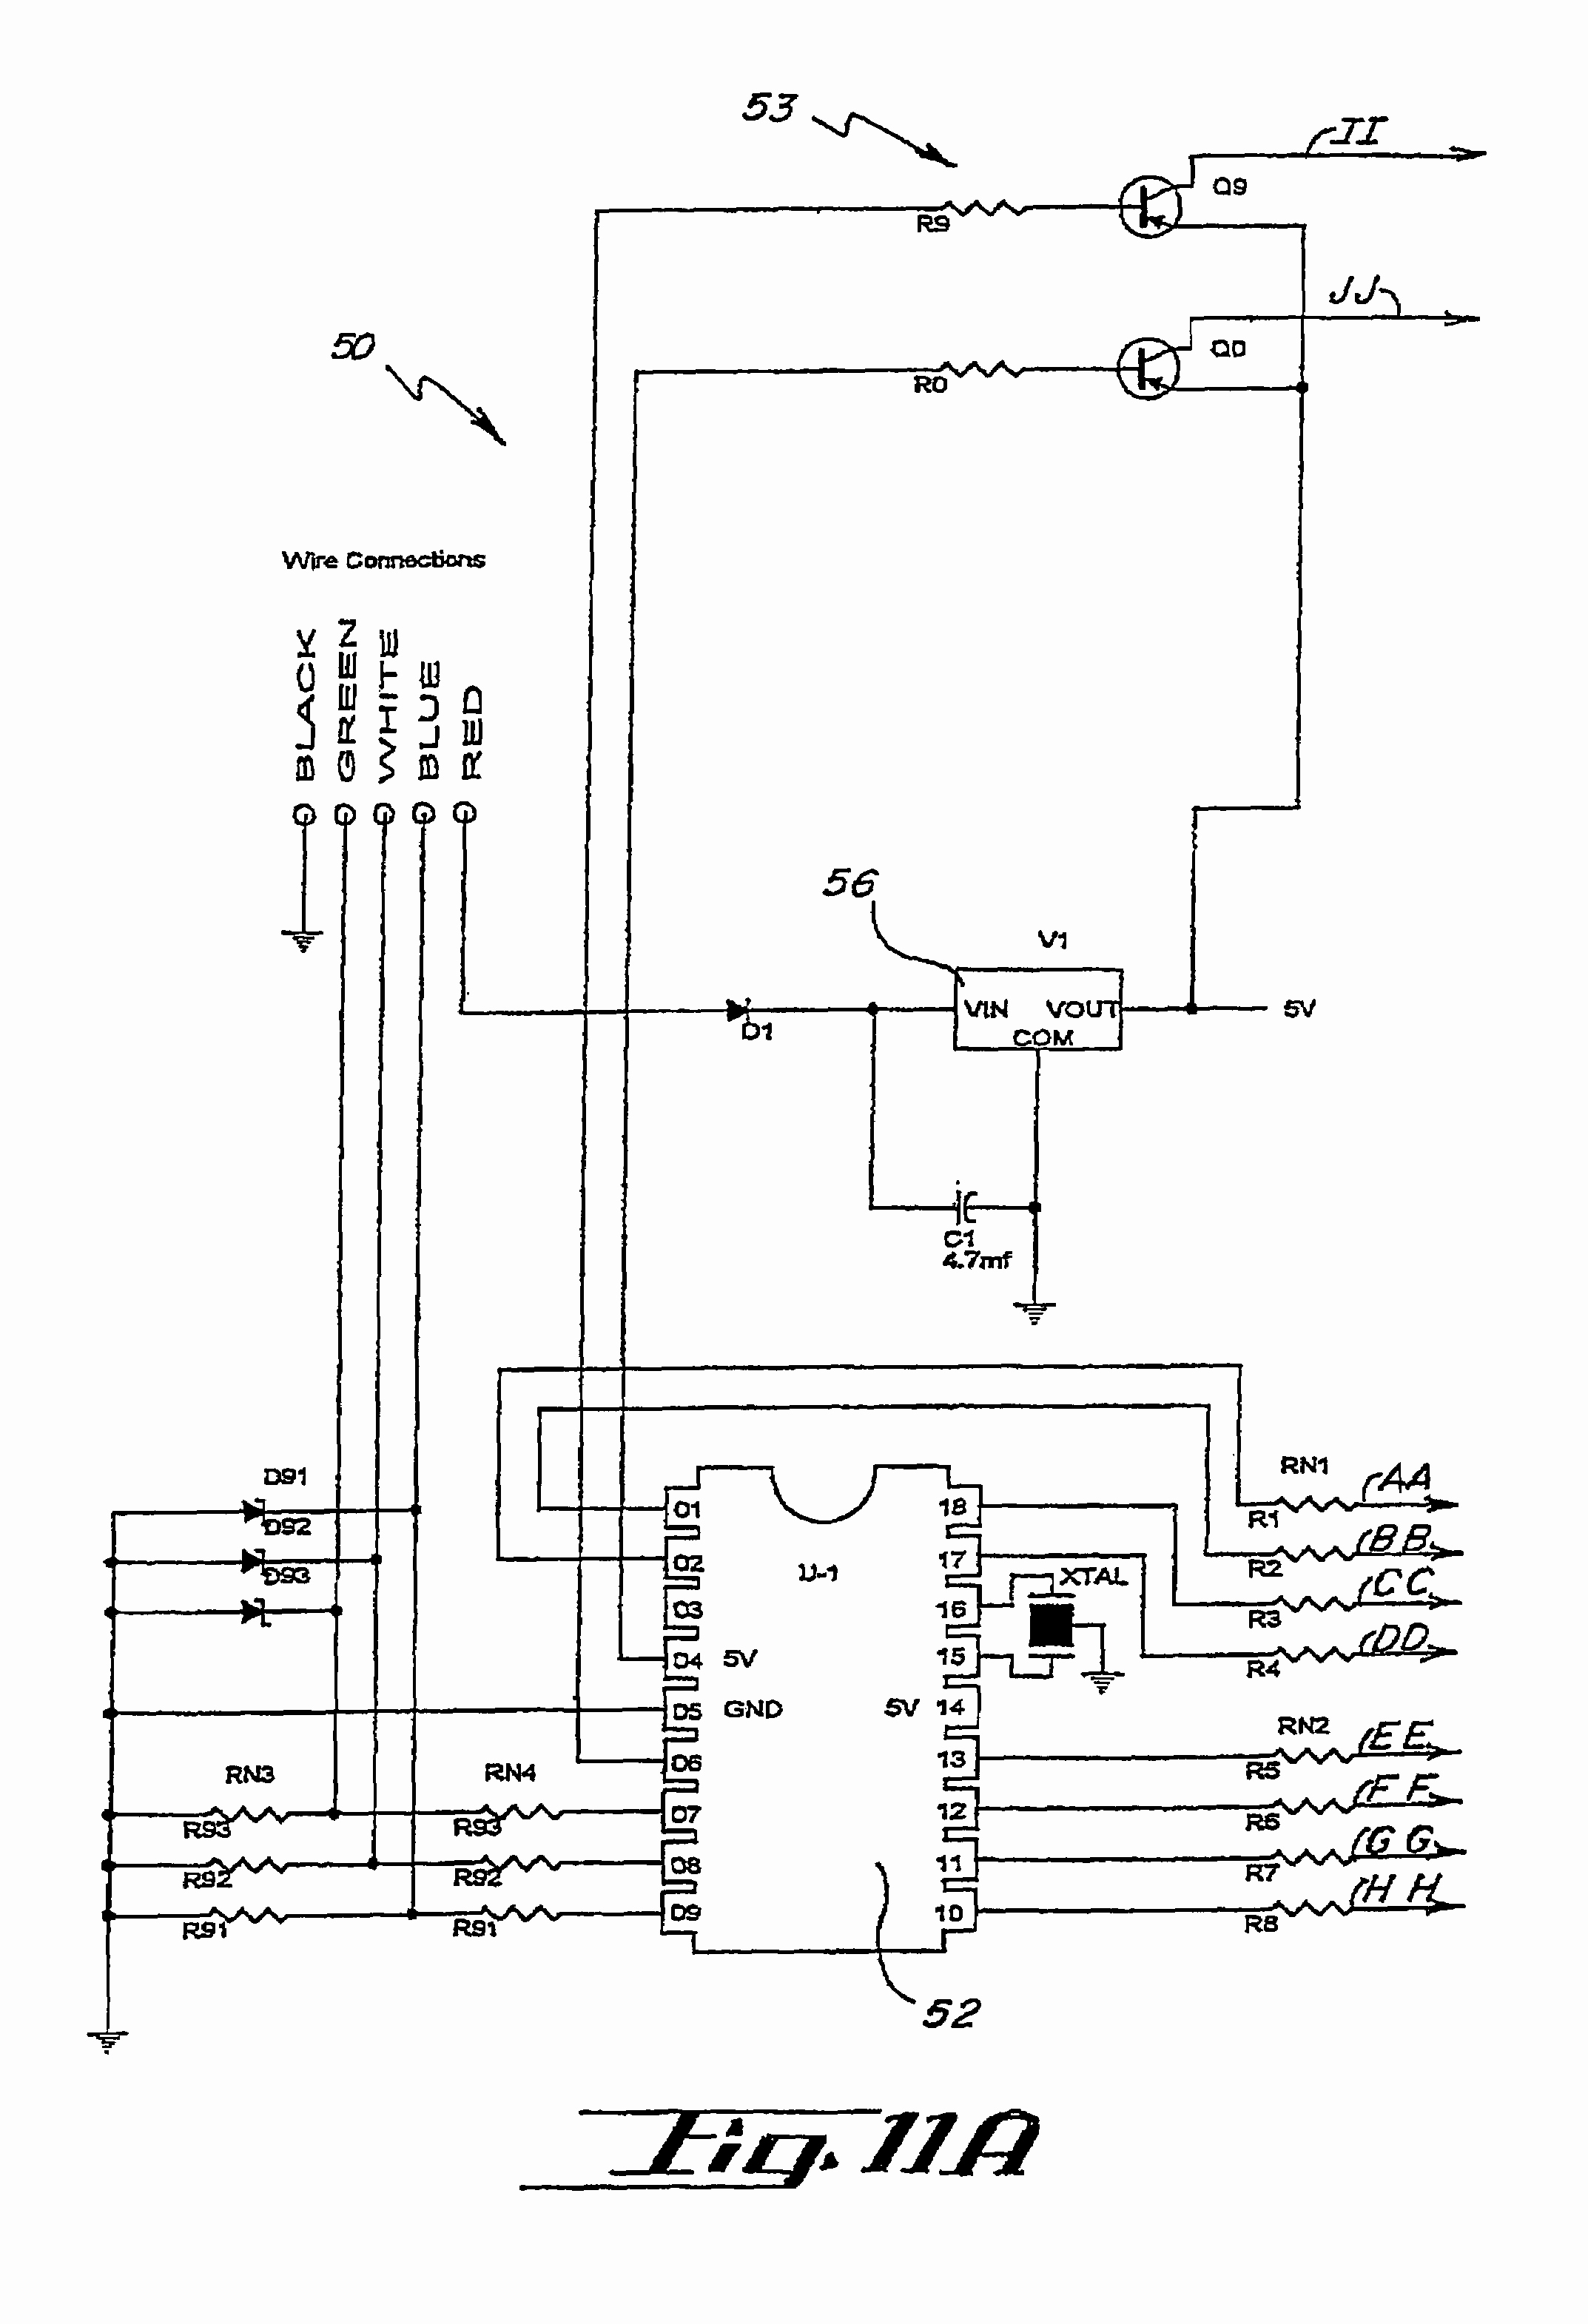 whelen 295hfsa1 wiring diagram Download-Full Size of Wiring Diagram Whelen Led Lightbar Wiring Diagram Fresh Fein Welen 295hfsa1 Schaltplan 19-f